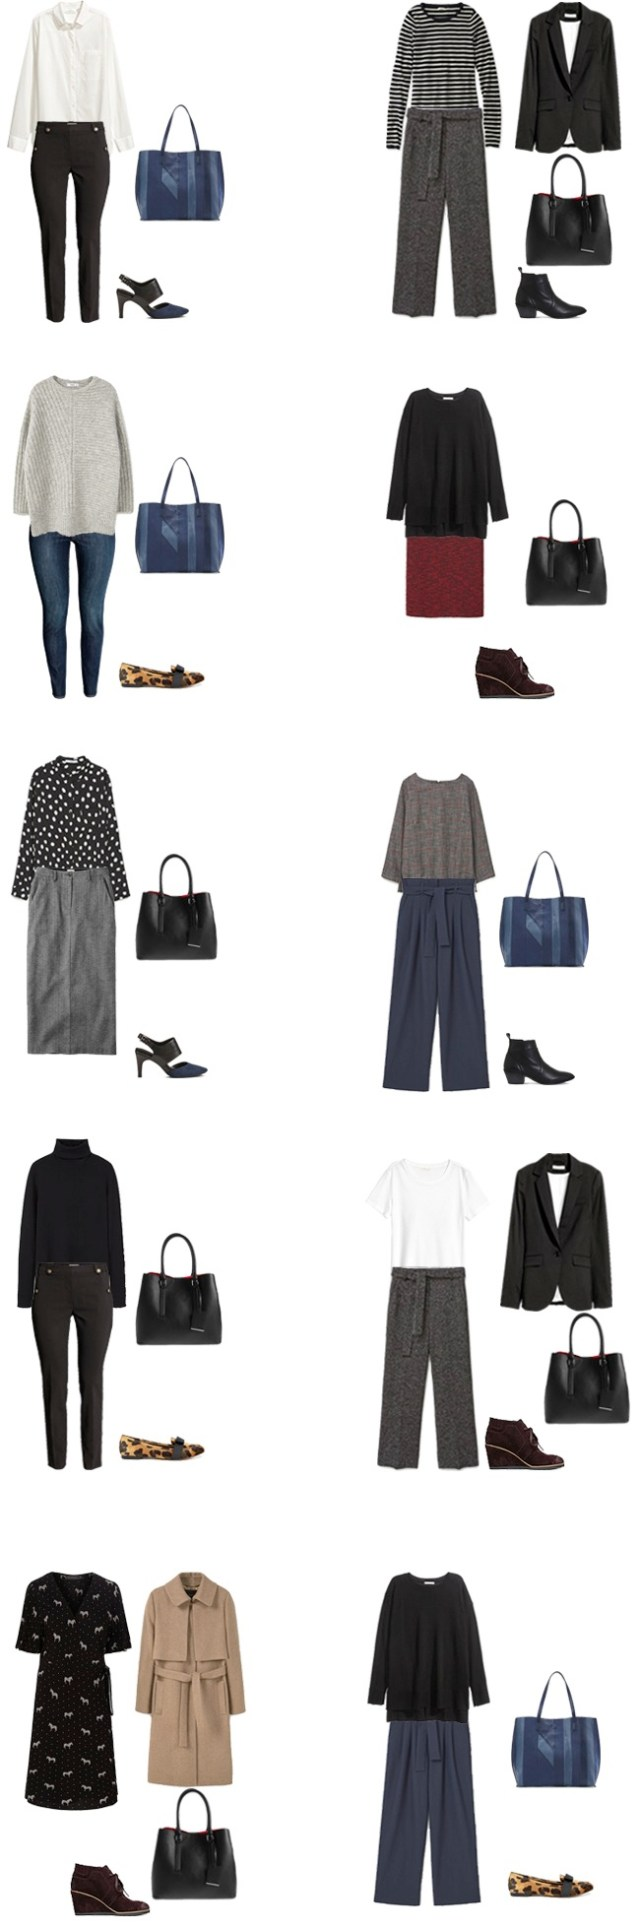 Fall/winter work capsule wardrobe business casual outfit options 21-30 #capsule #capsulewardrobe #workcapsule #workwear